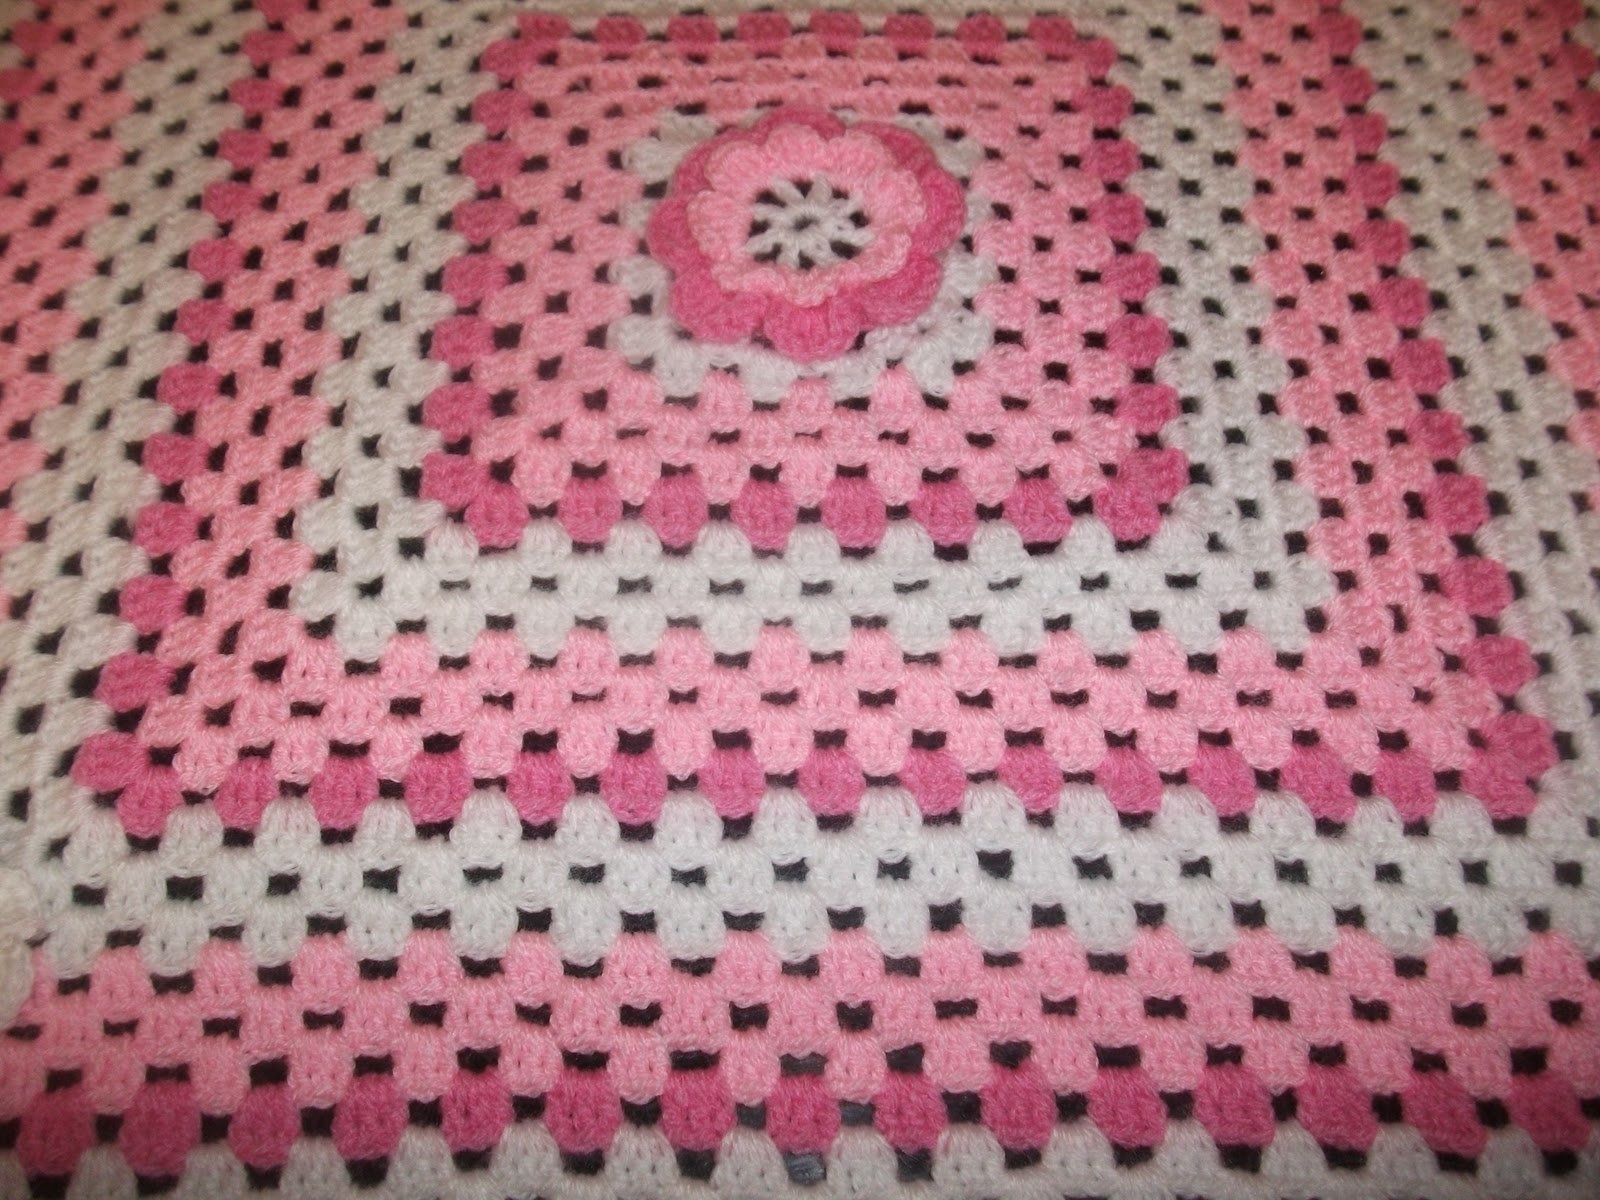 Crocheting Baby Blanket : Helens Colourful Crochet Blankets: New baby girl pink crochet blanket